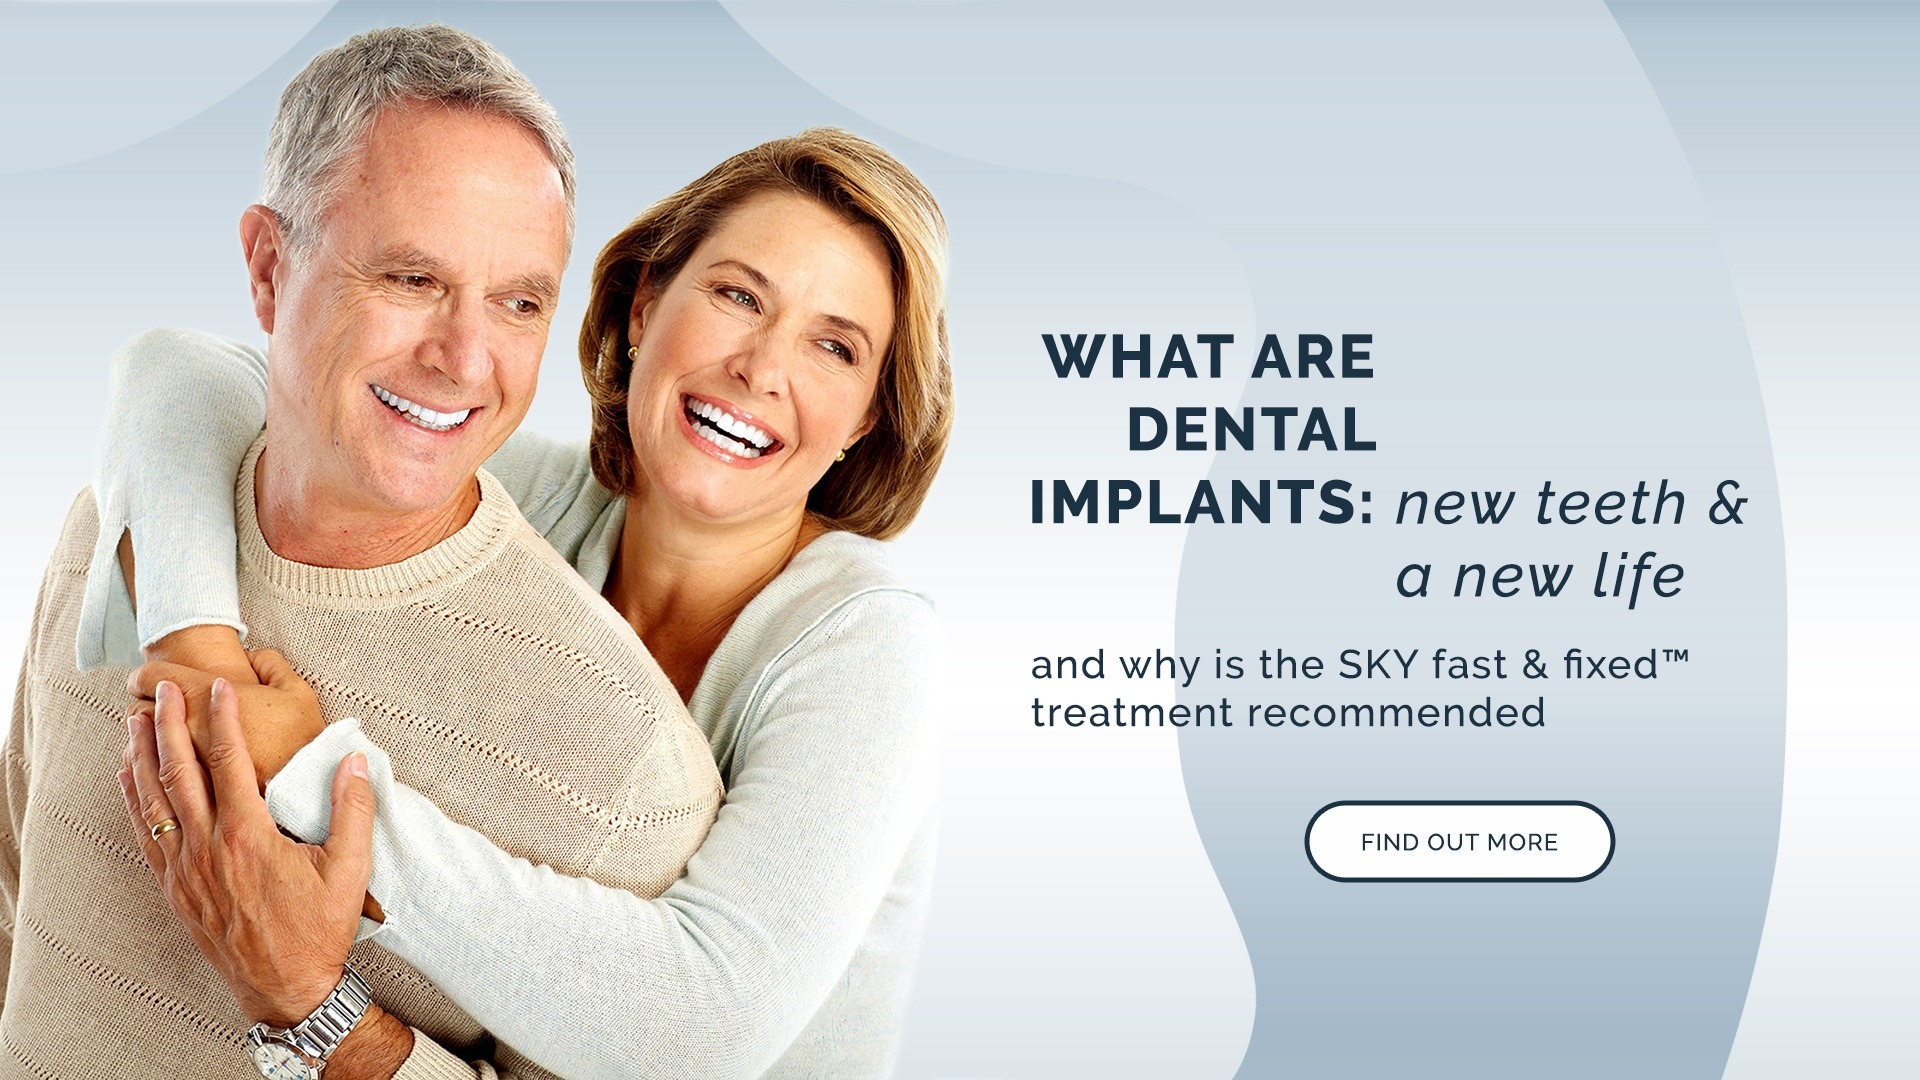 Slide 8 - what are dental implants?